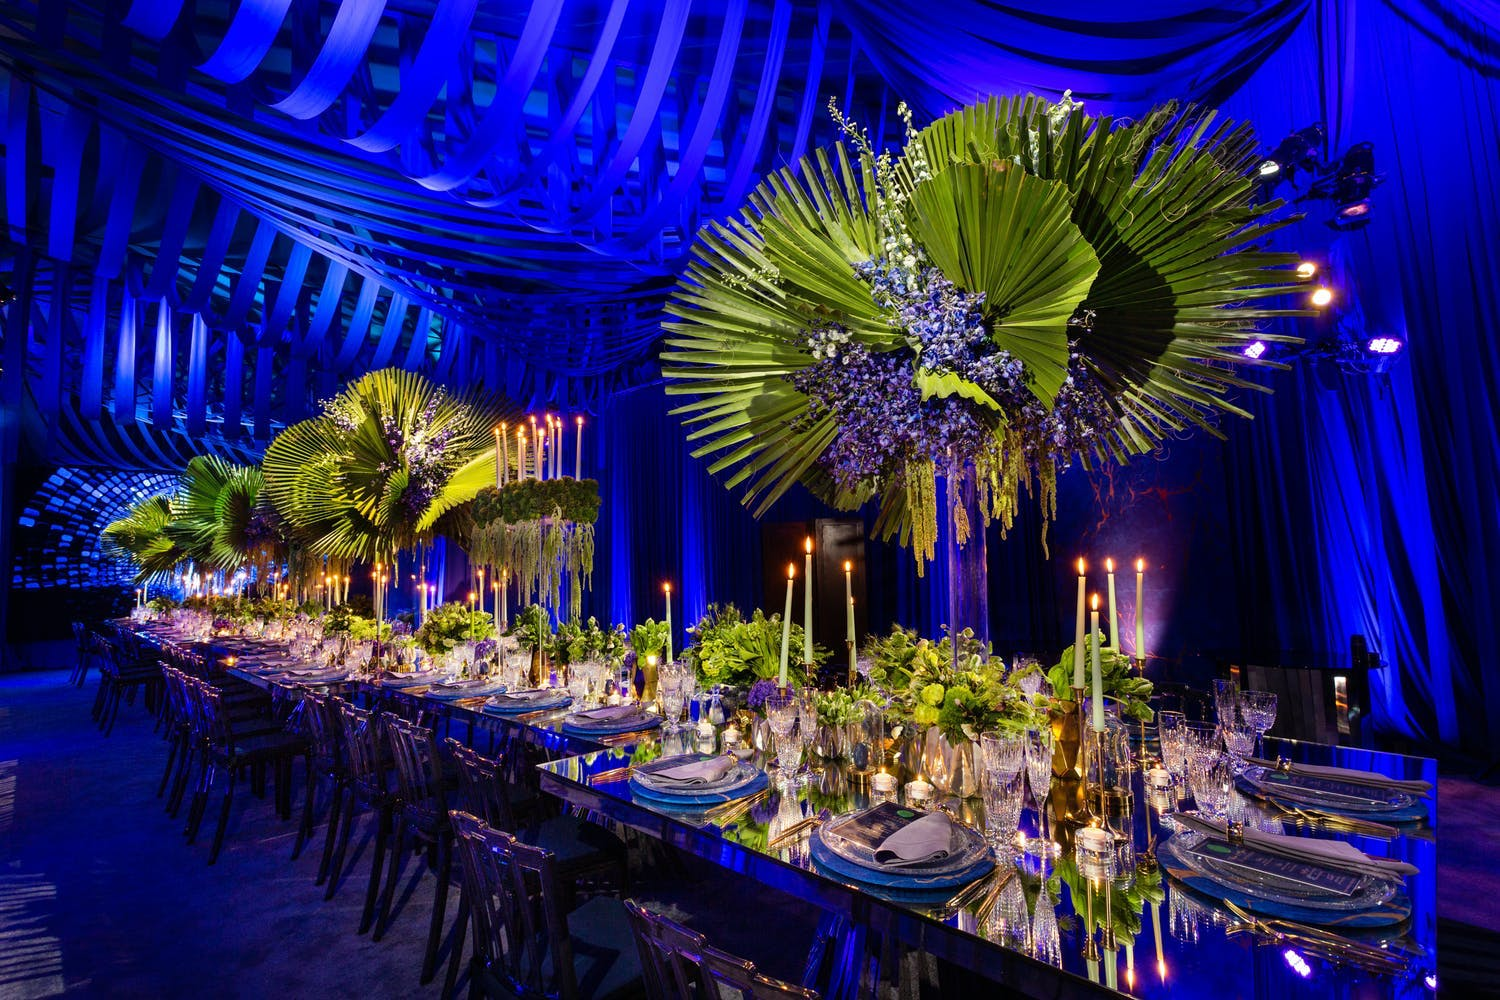 Blue lapis-inspired anniversary party with bright blue ceiling décor and greenery centerpieces | PartySlate